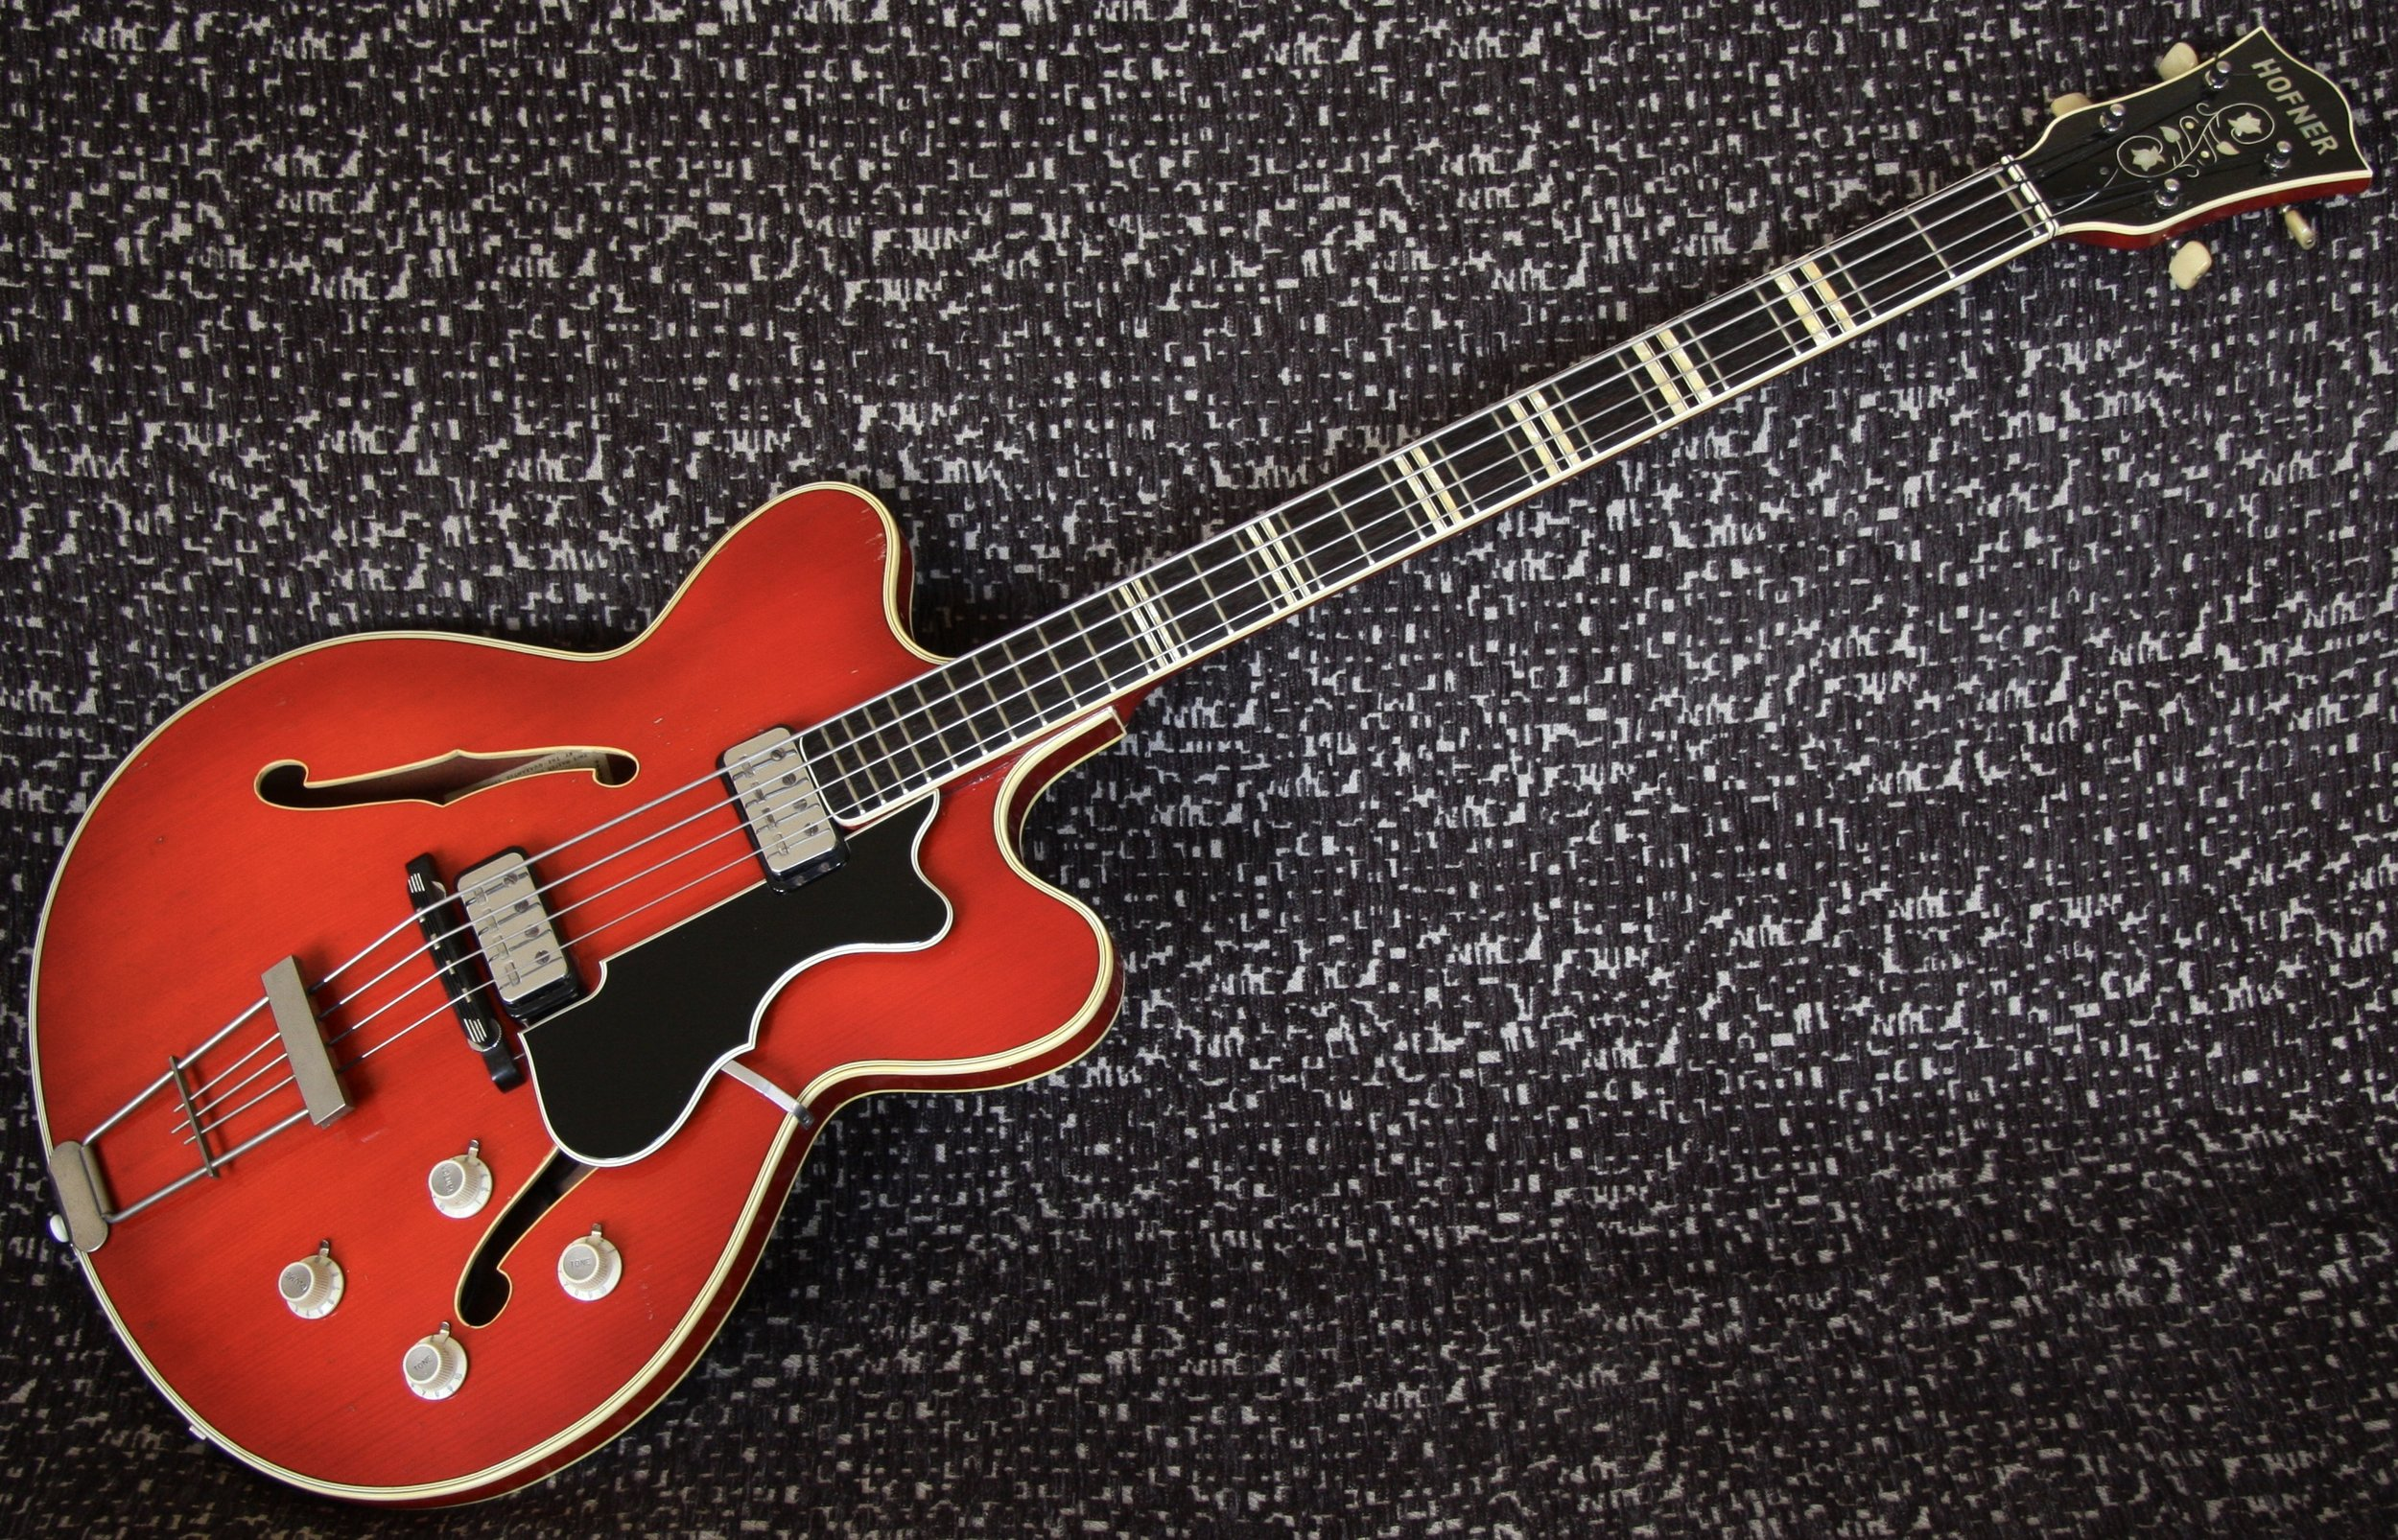 1964 Hofner Verithin Bass